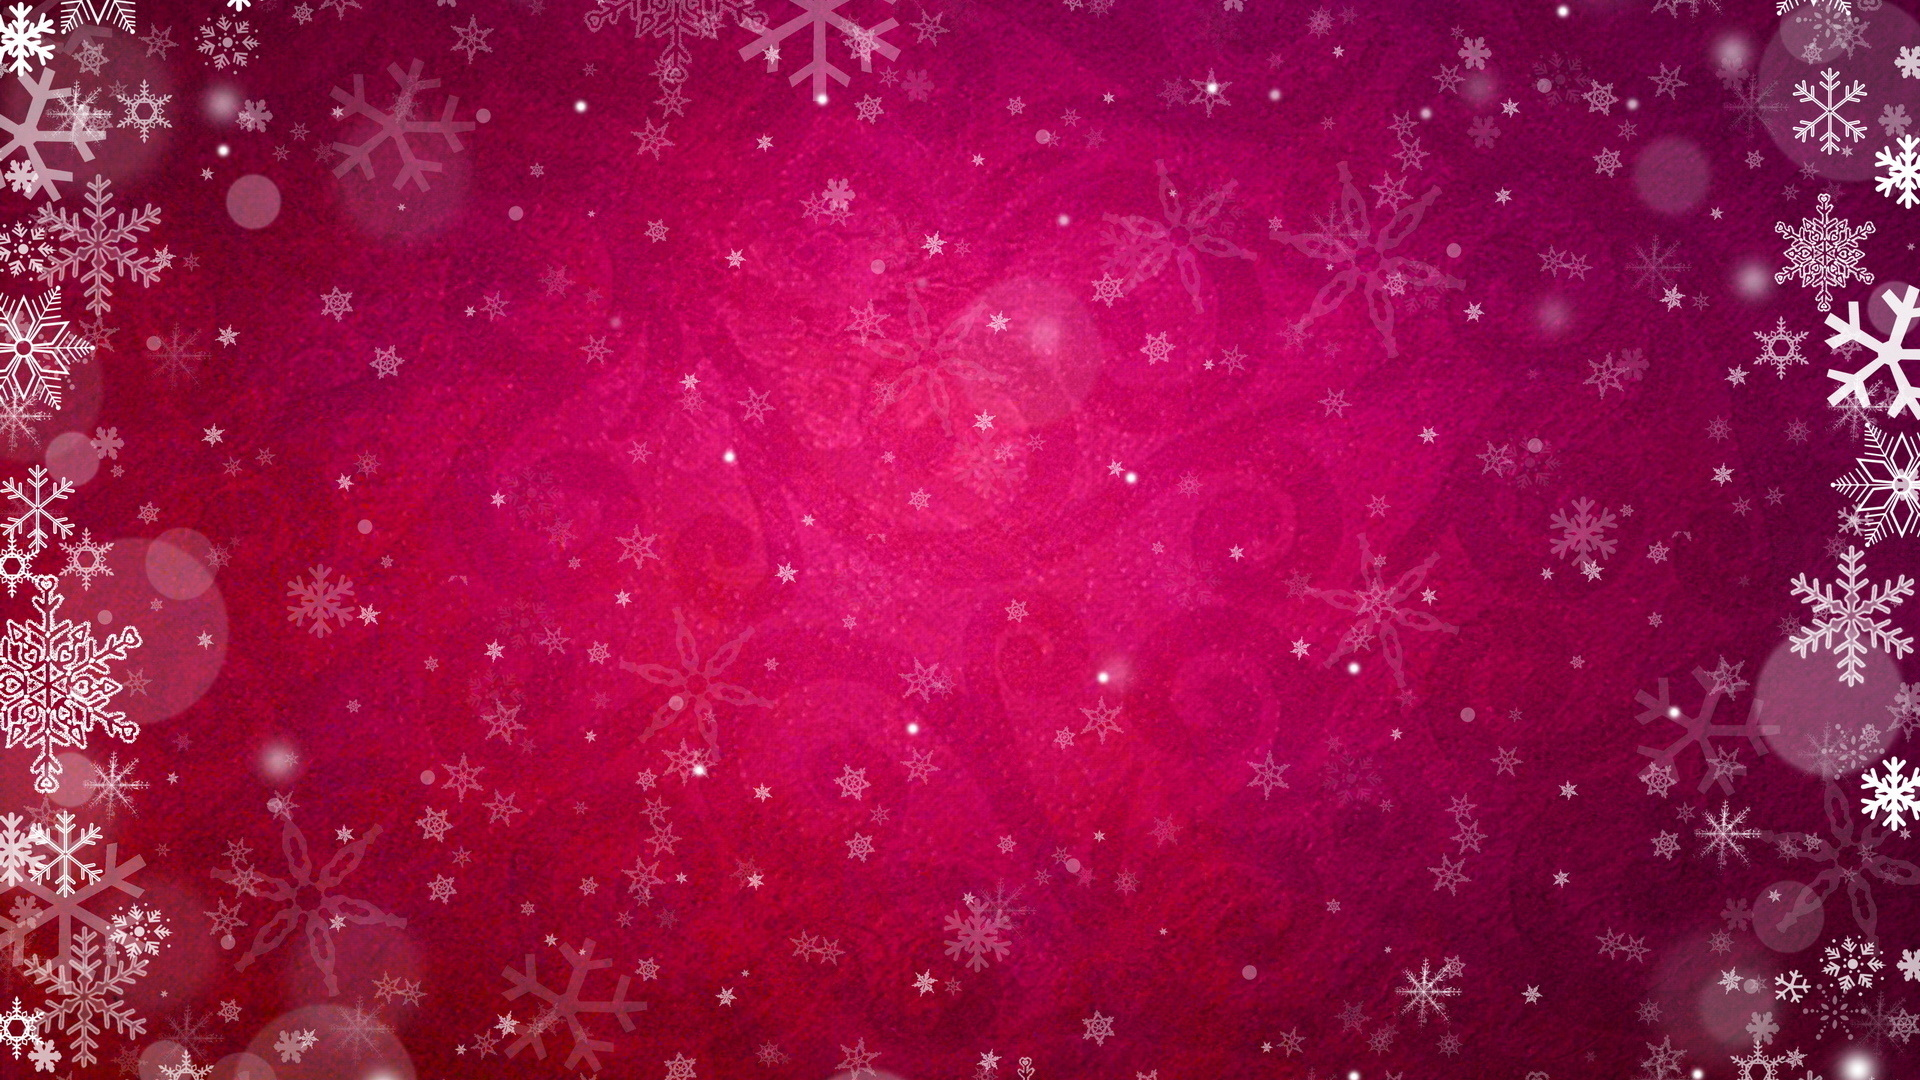 snowflake background 18283